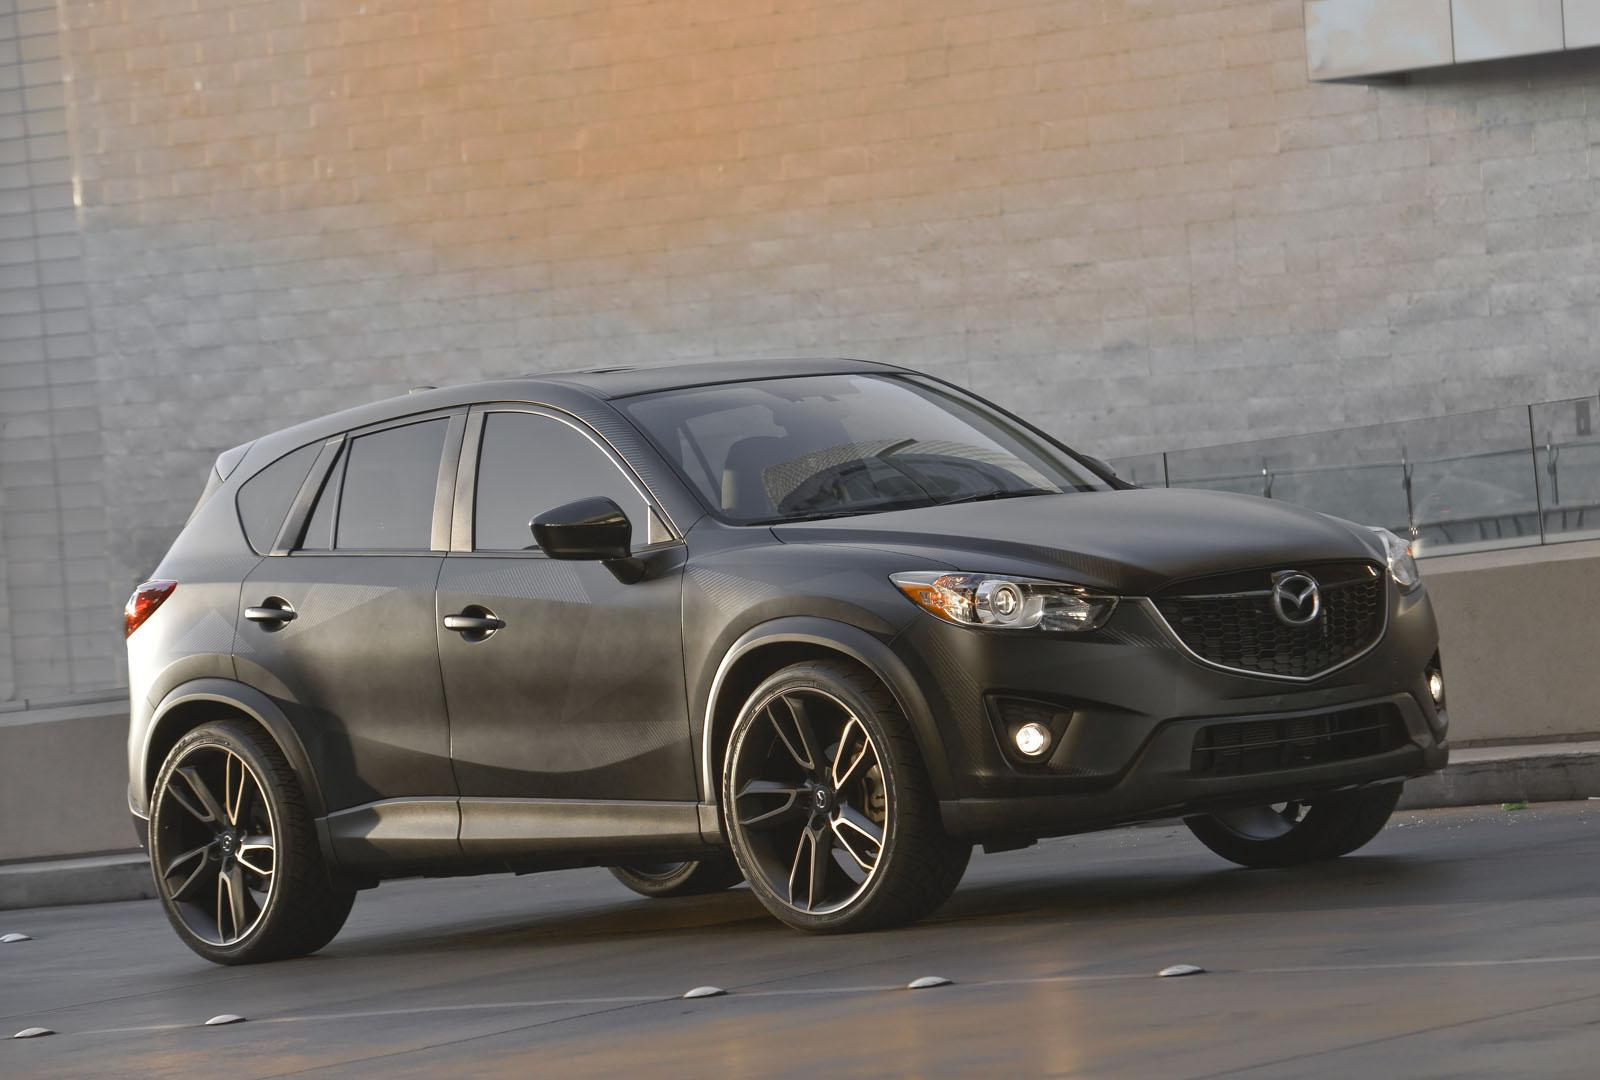 https://s1.cdn.autoevolution.com/images/news/mazda-cx-5-urban-presented-at-2012-sema-photo-gallery-51181_1.jpg